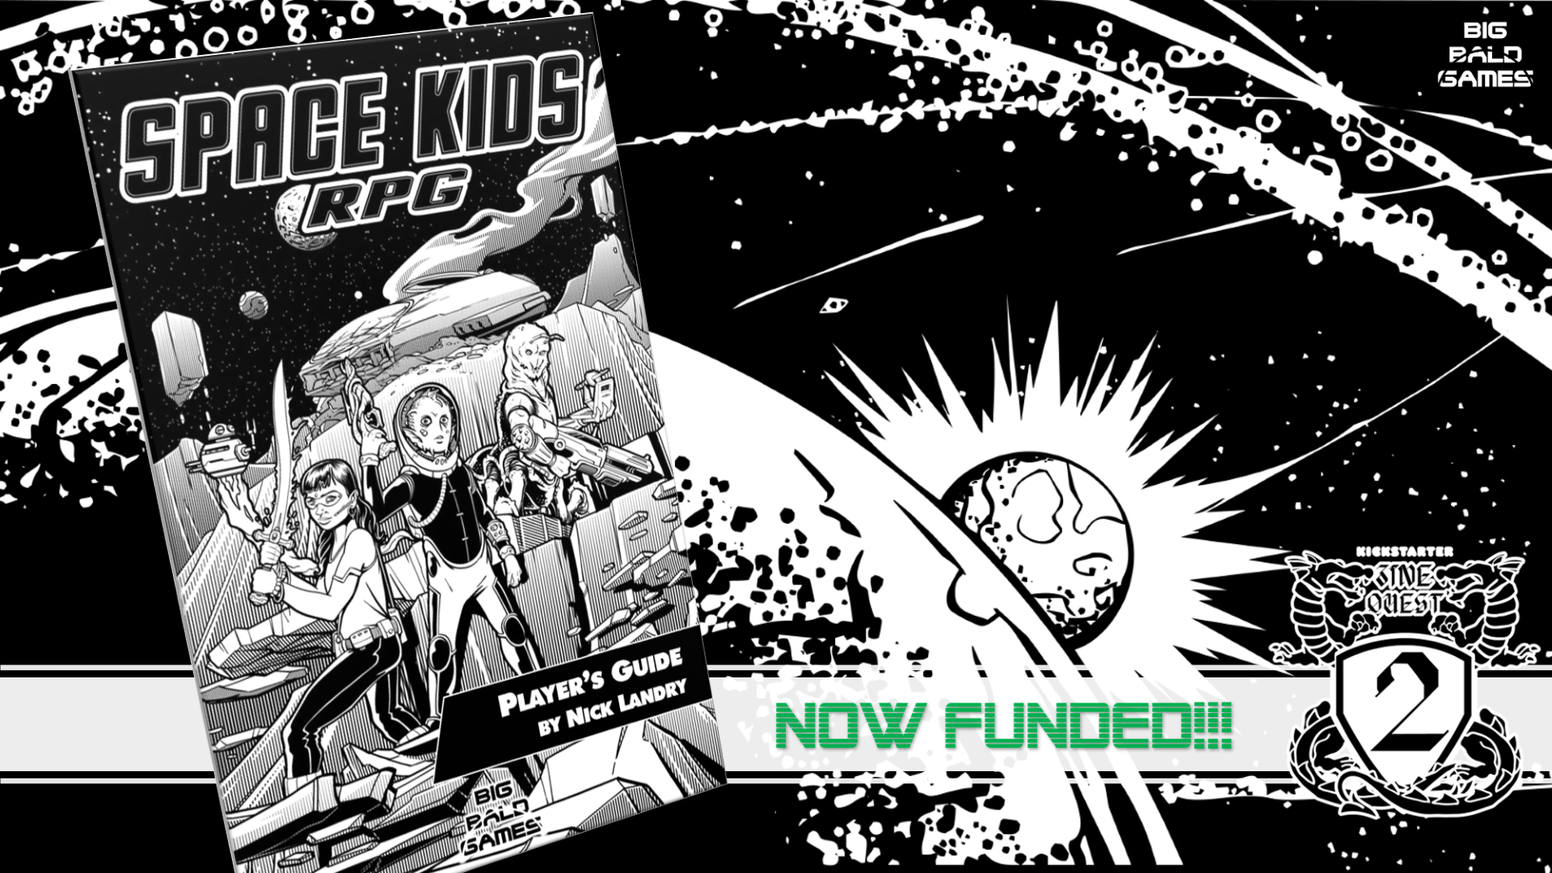 SPACE KIDS RPG is a simple, fun, inclusive, and educational science fiction tabletop roleplaying game for kids aged 4-12 and their parents.